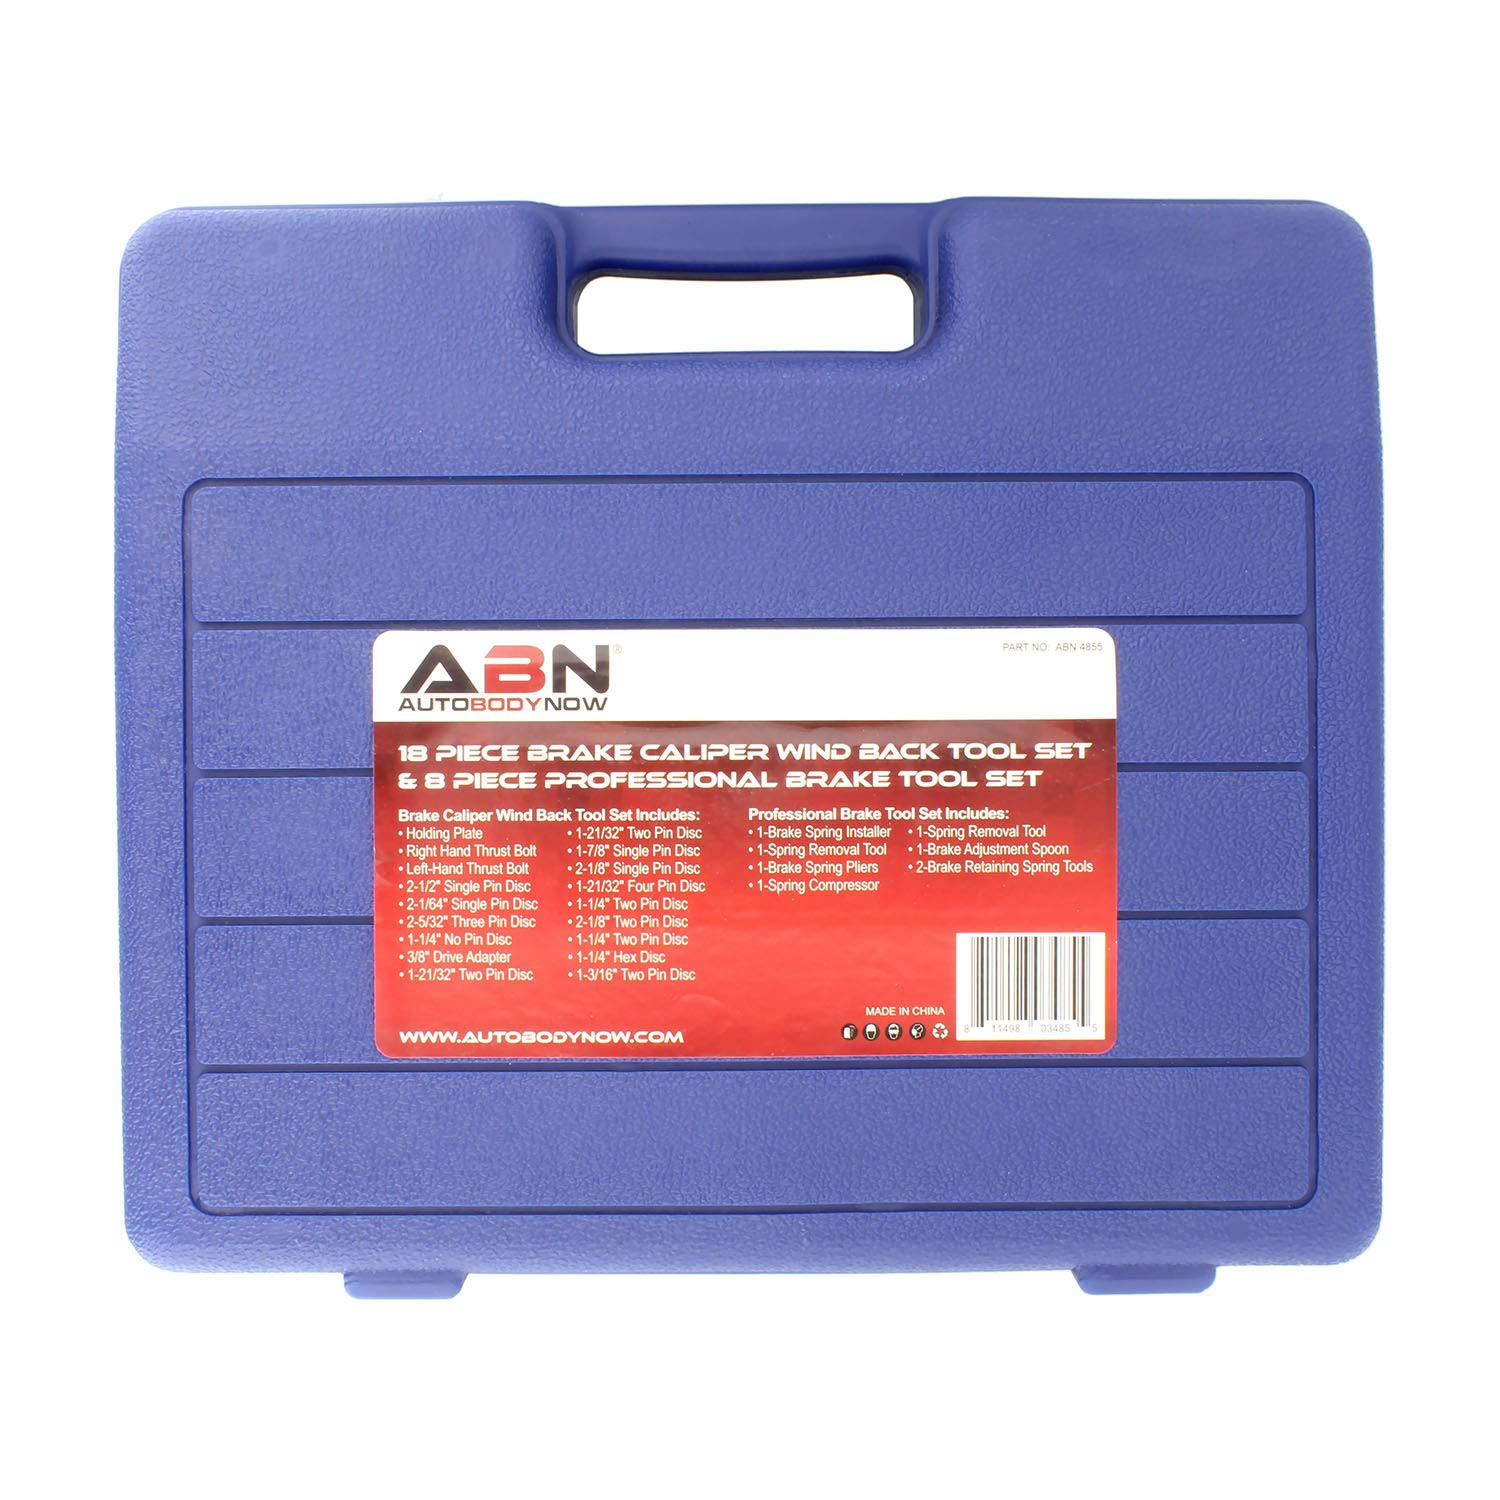 ABN Brake Tool Sets w/ 18 Pc Disc Brake Caliper Tool Kit & 8 Pc Drum Brake Tool Kit – Removal and Installation Tools by ABN (Image #6)